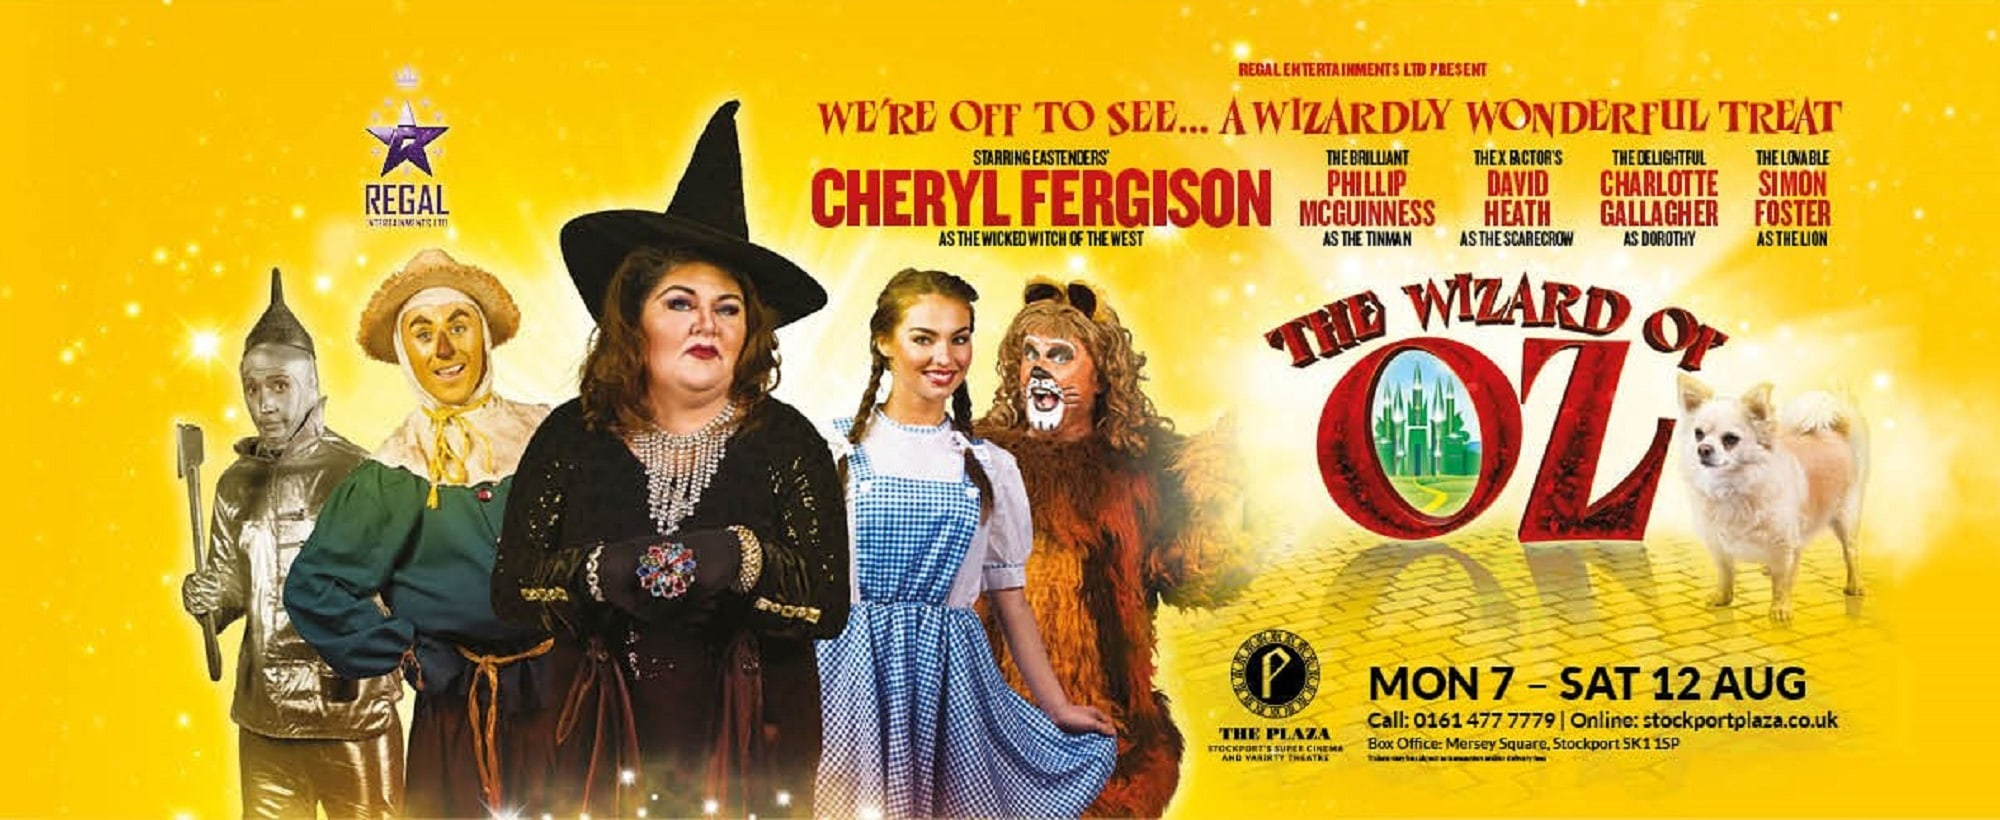 Win The Wizard of Oz family ticket, Stockport Plaza